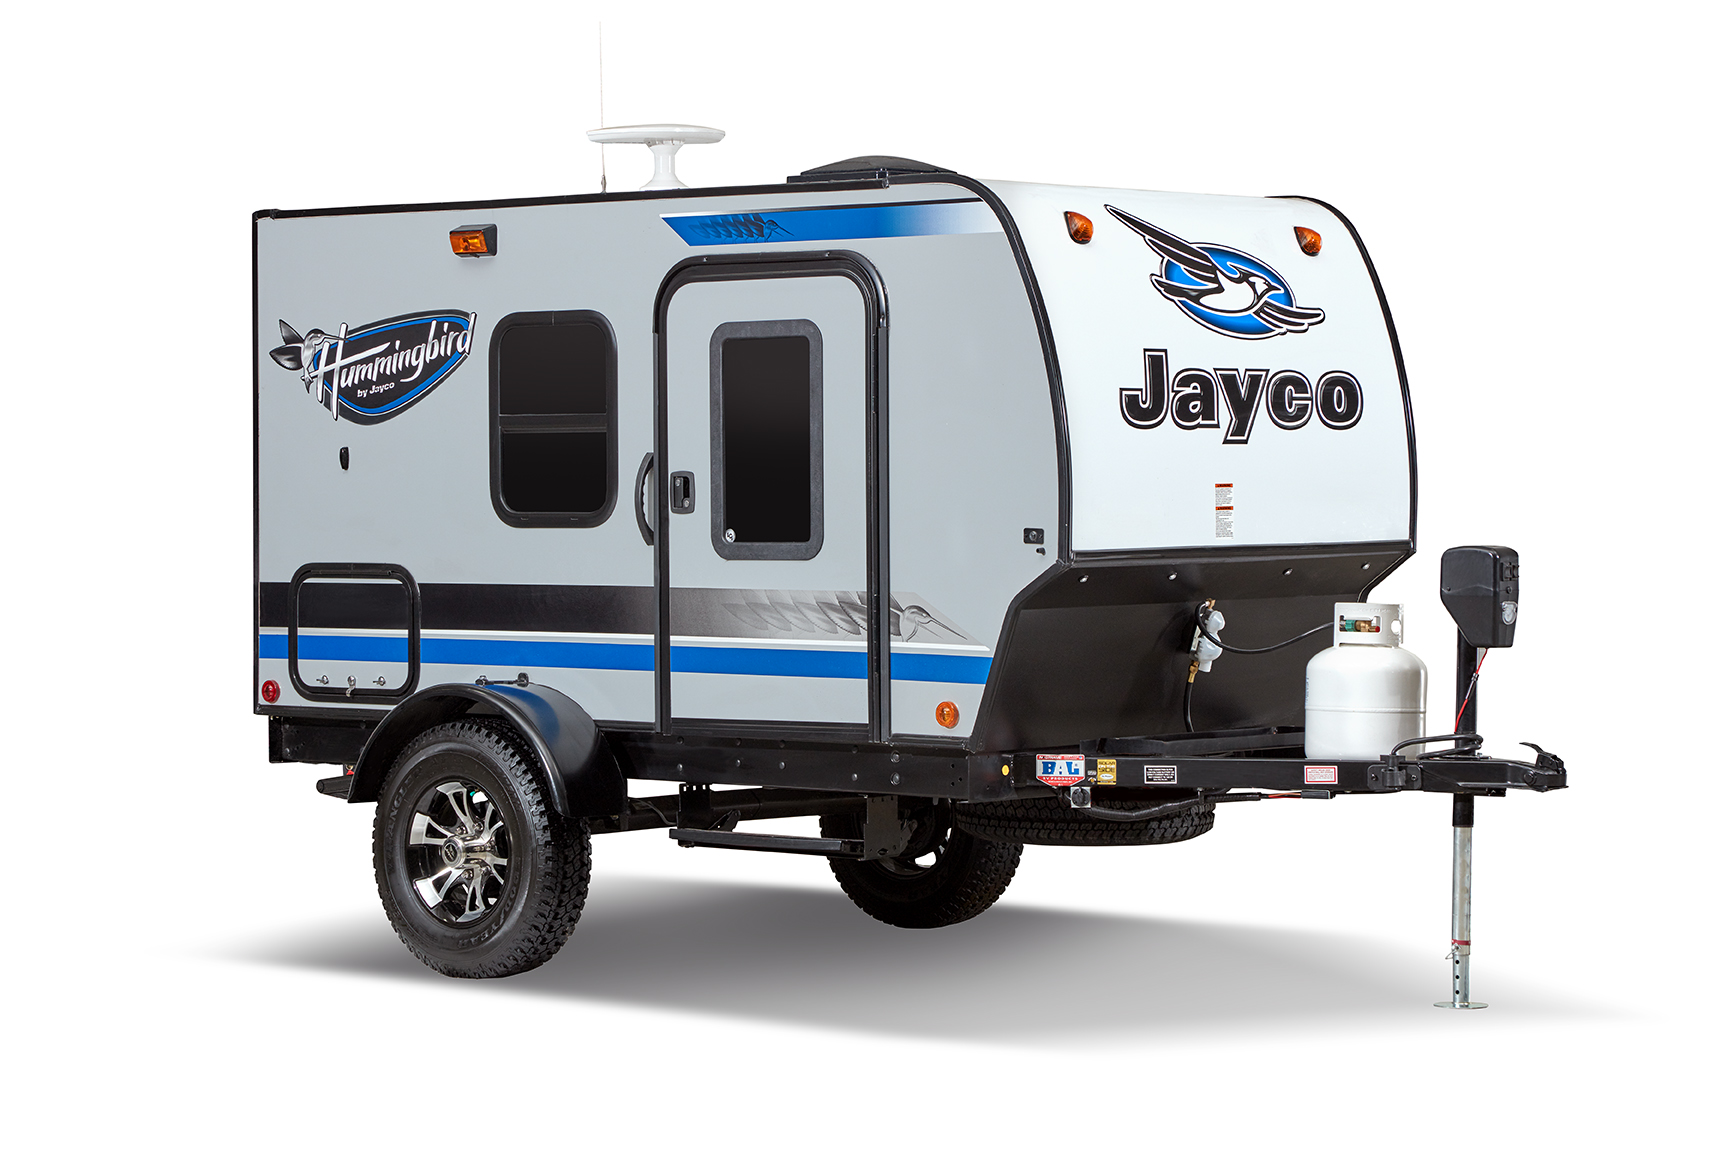 A New Tiny Trailer The Jayco Hummingbird 10rk View Topic Fishing 14 2 Romex From Exterior Wall Light To Underbelly